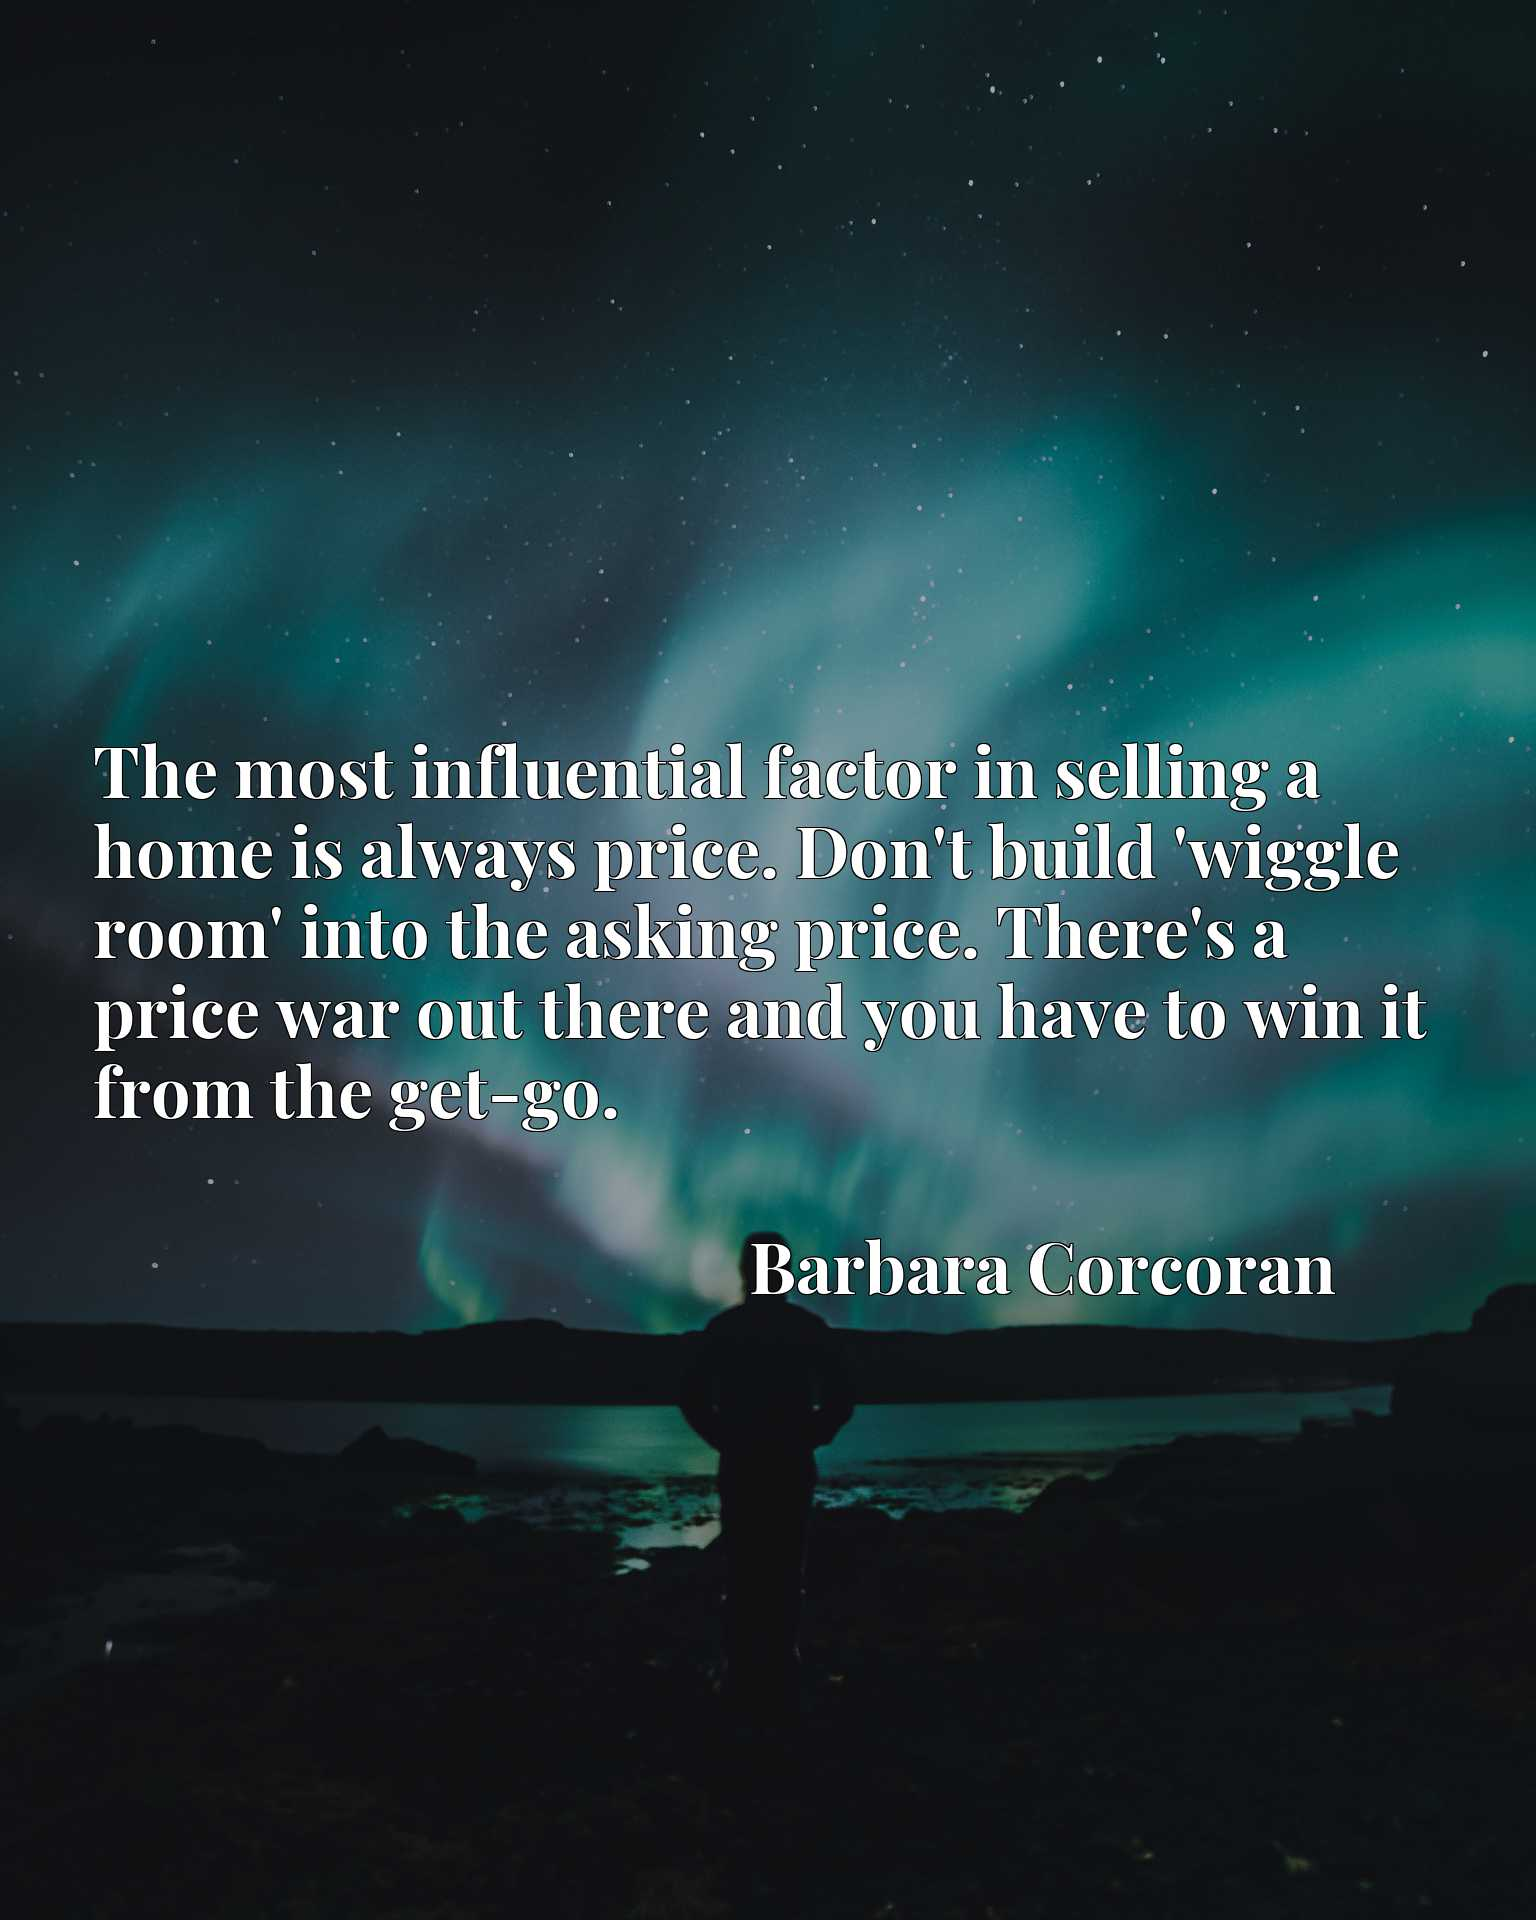 The most influential factor in selling a home is always price. Don't build 'wiggle room' into the asking price. There's a price war out there and you have to win it from the get-go.